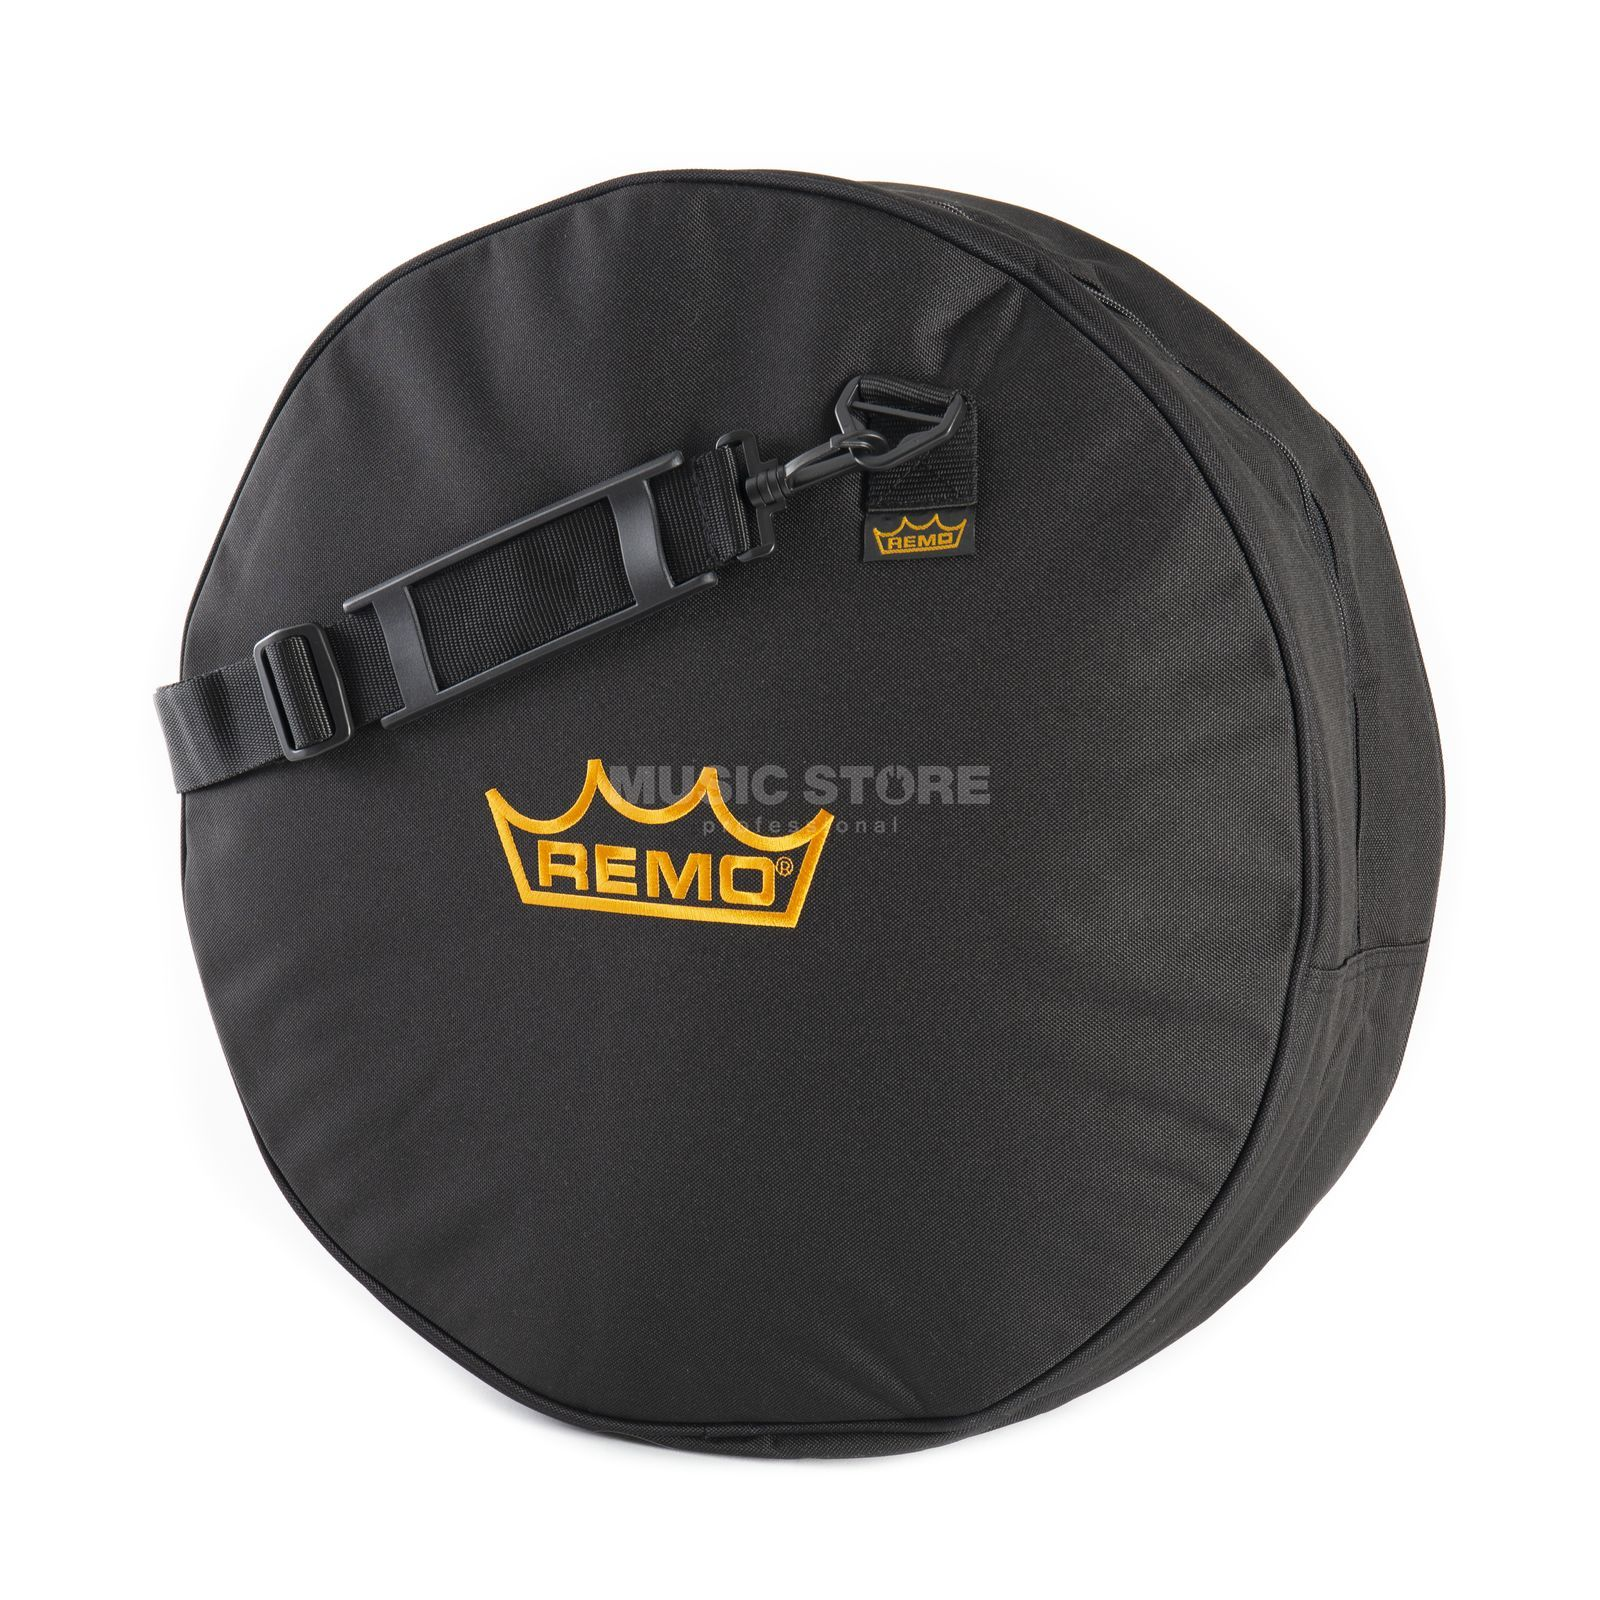 "Remo Bag f. Hand Drums HD-0016-BG, 16"" Produktbild"